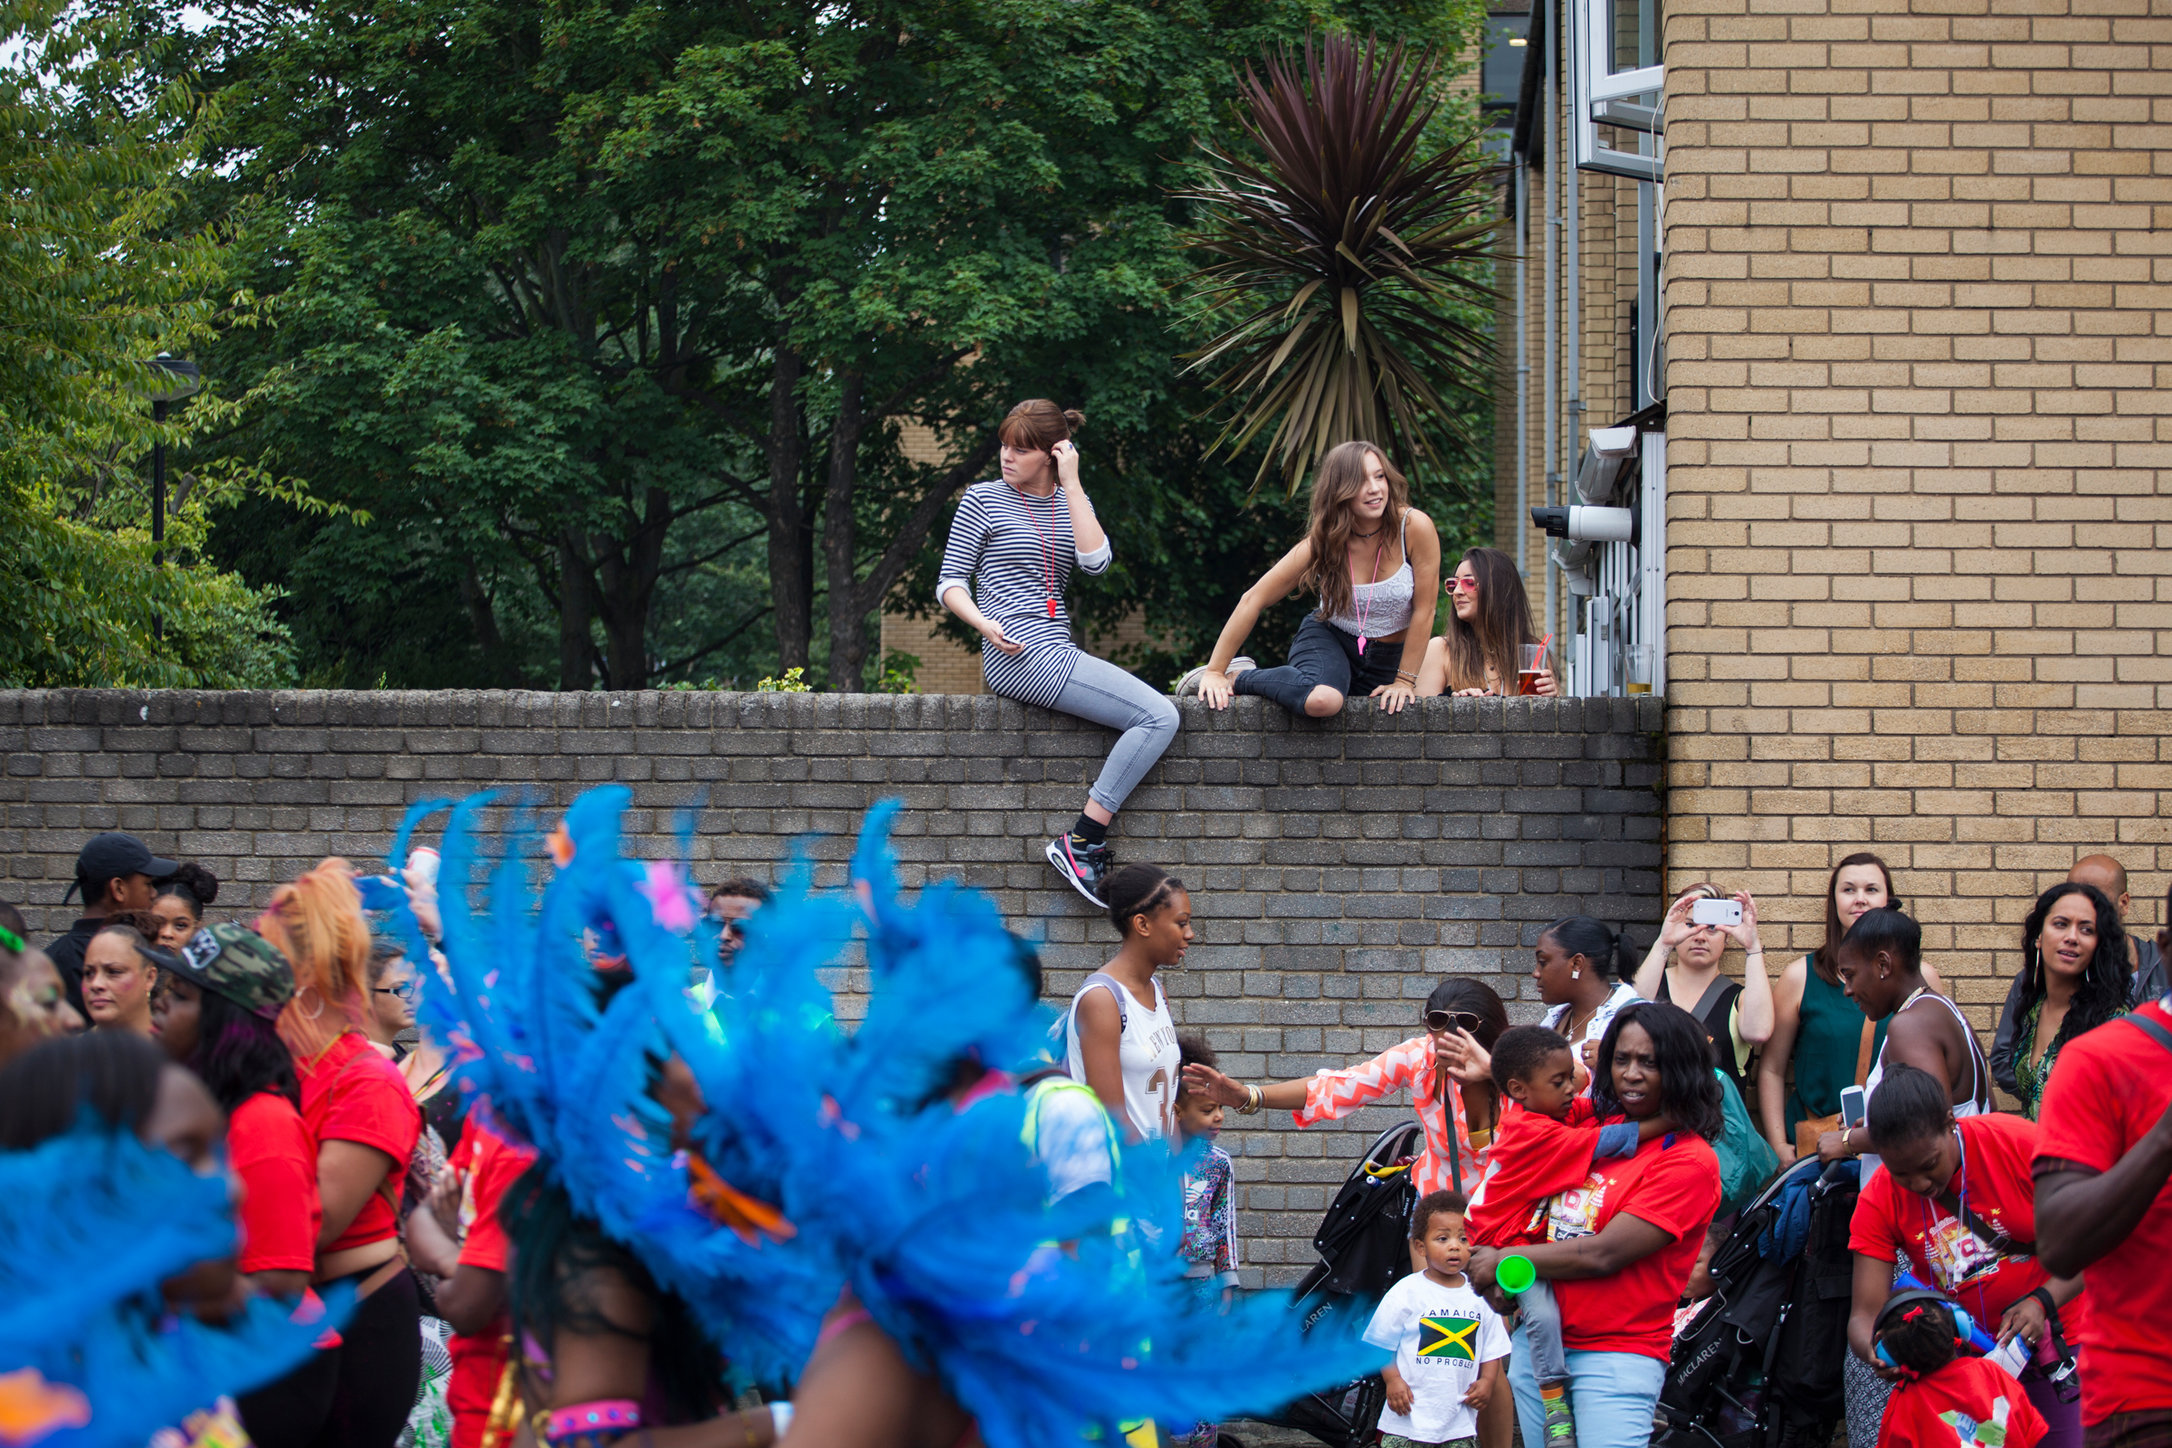 carnival©oliviarutherford-6551.jpg